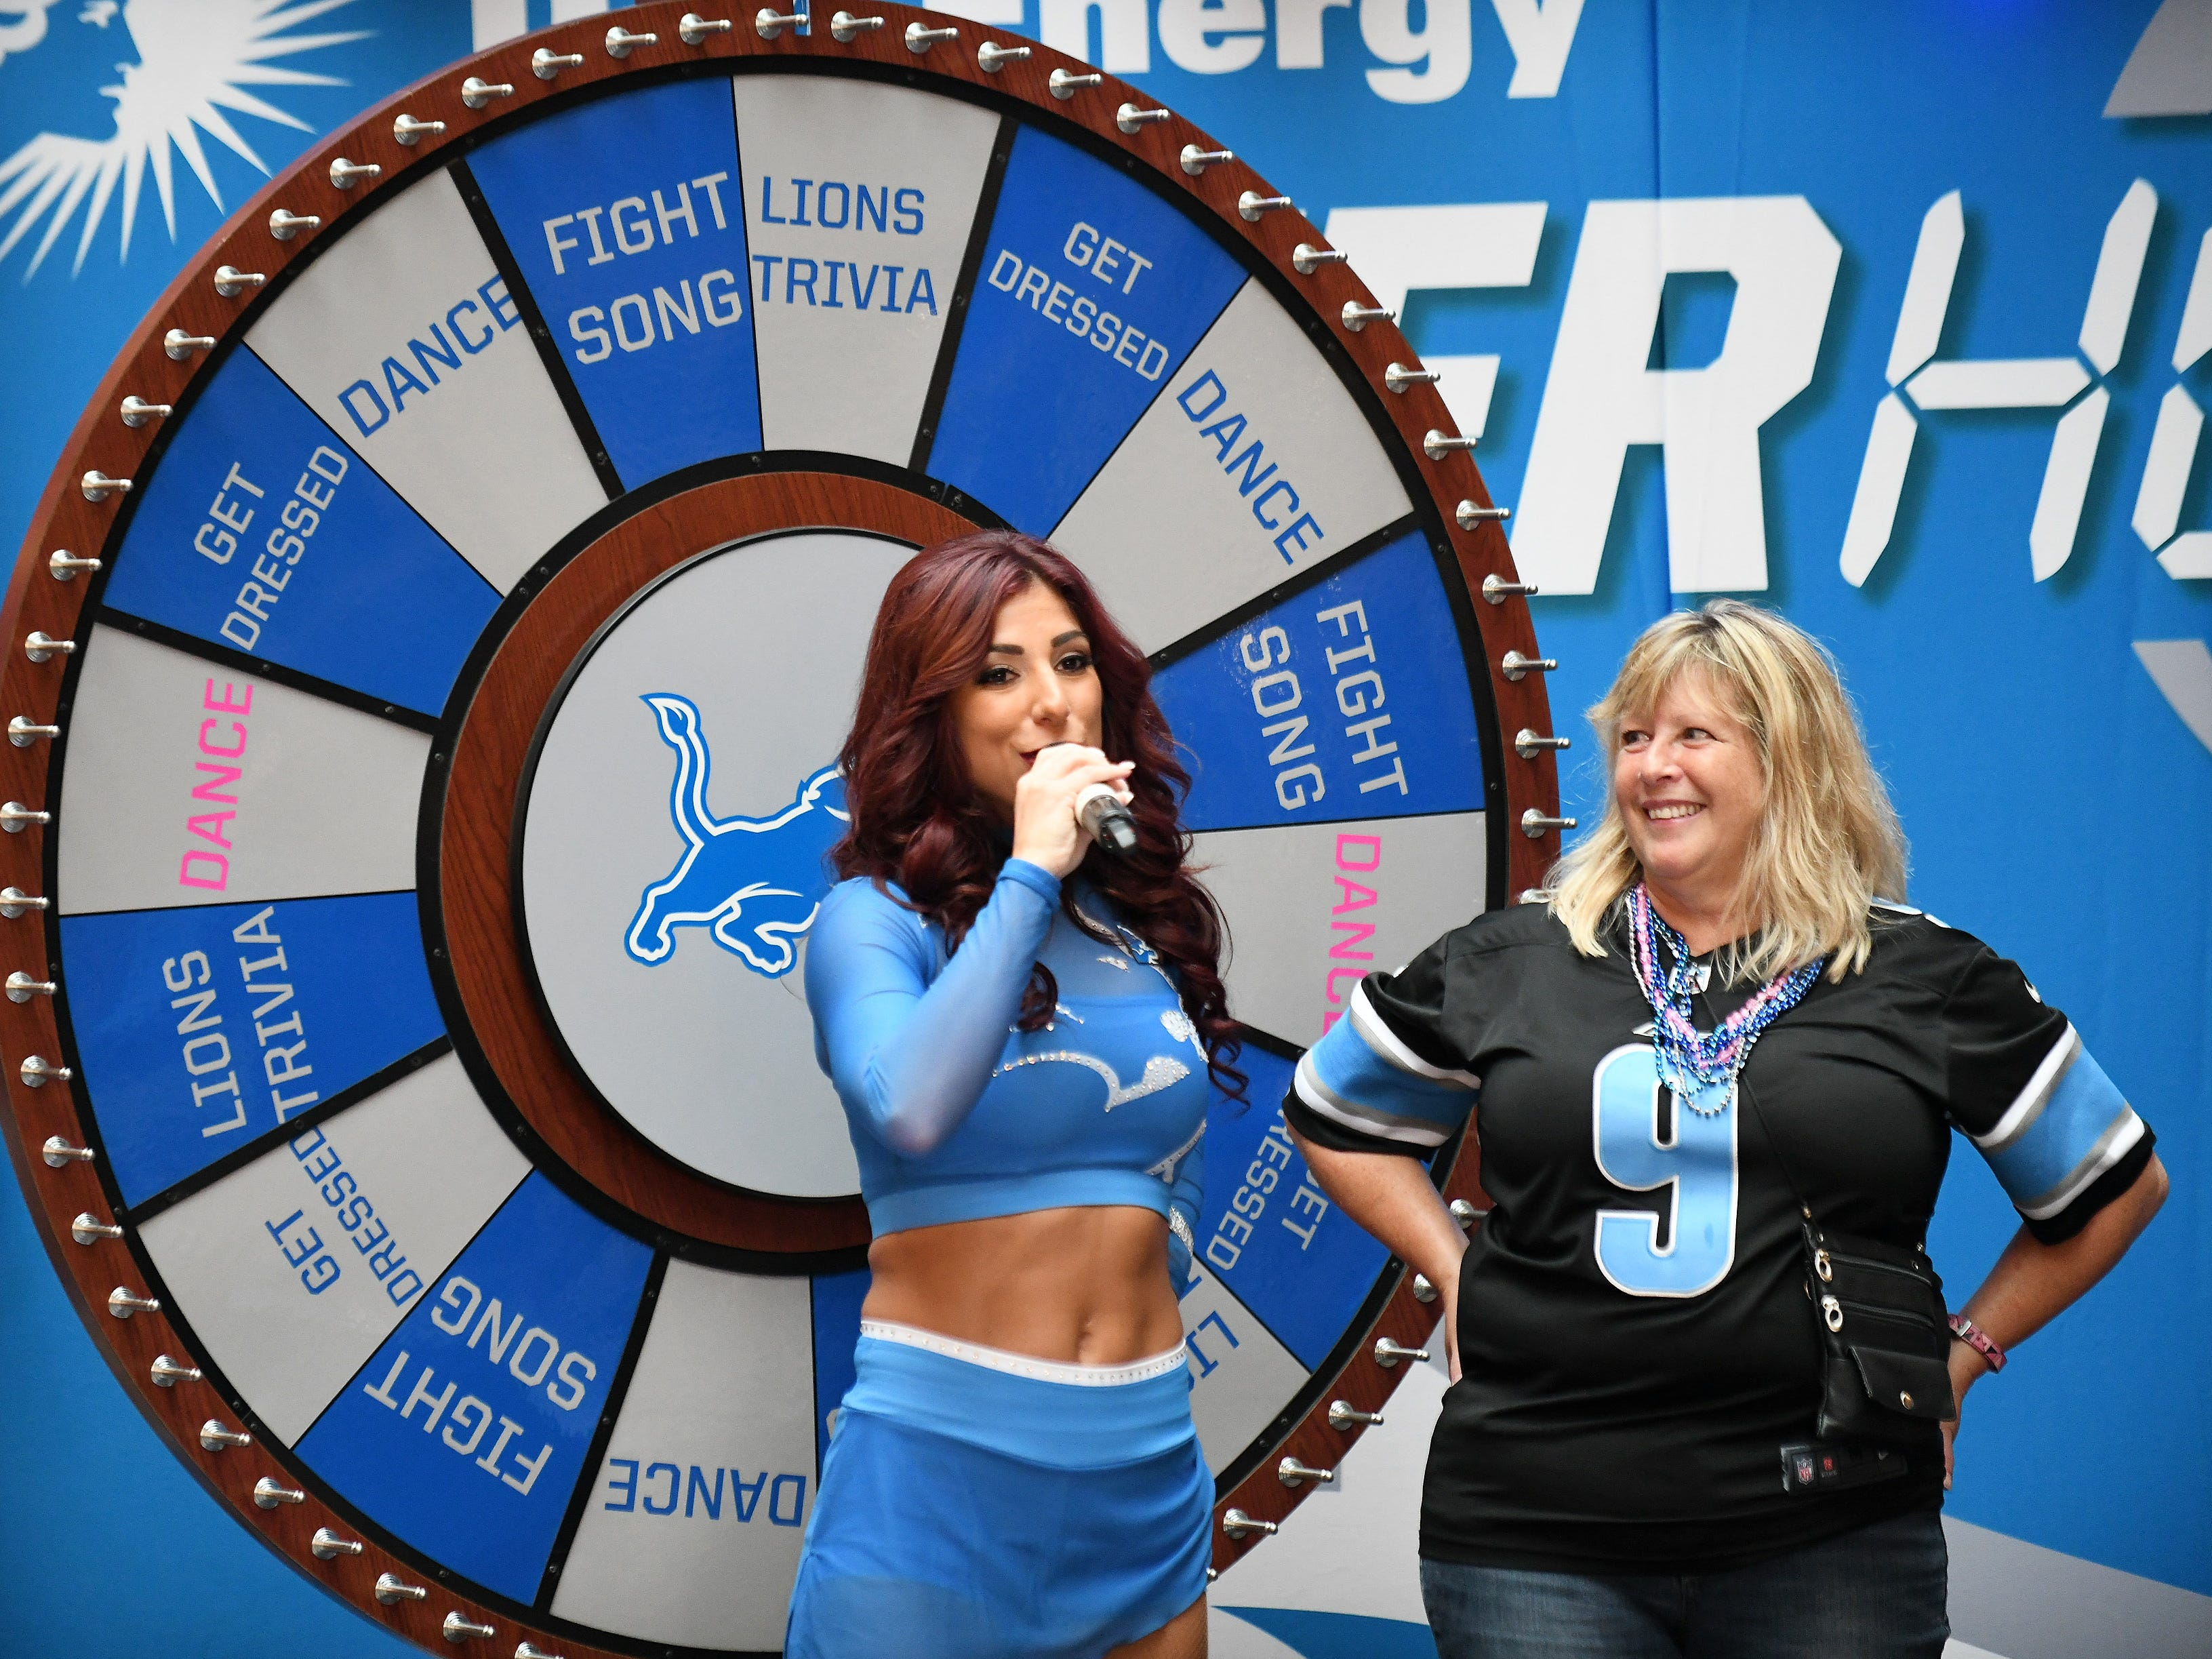 Mary Mullin of Waterford, right, waits to see if her answer to a Lions trivia question is correct at fan activities with the Lions cheerleaders.